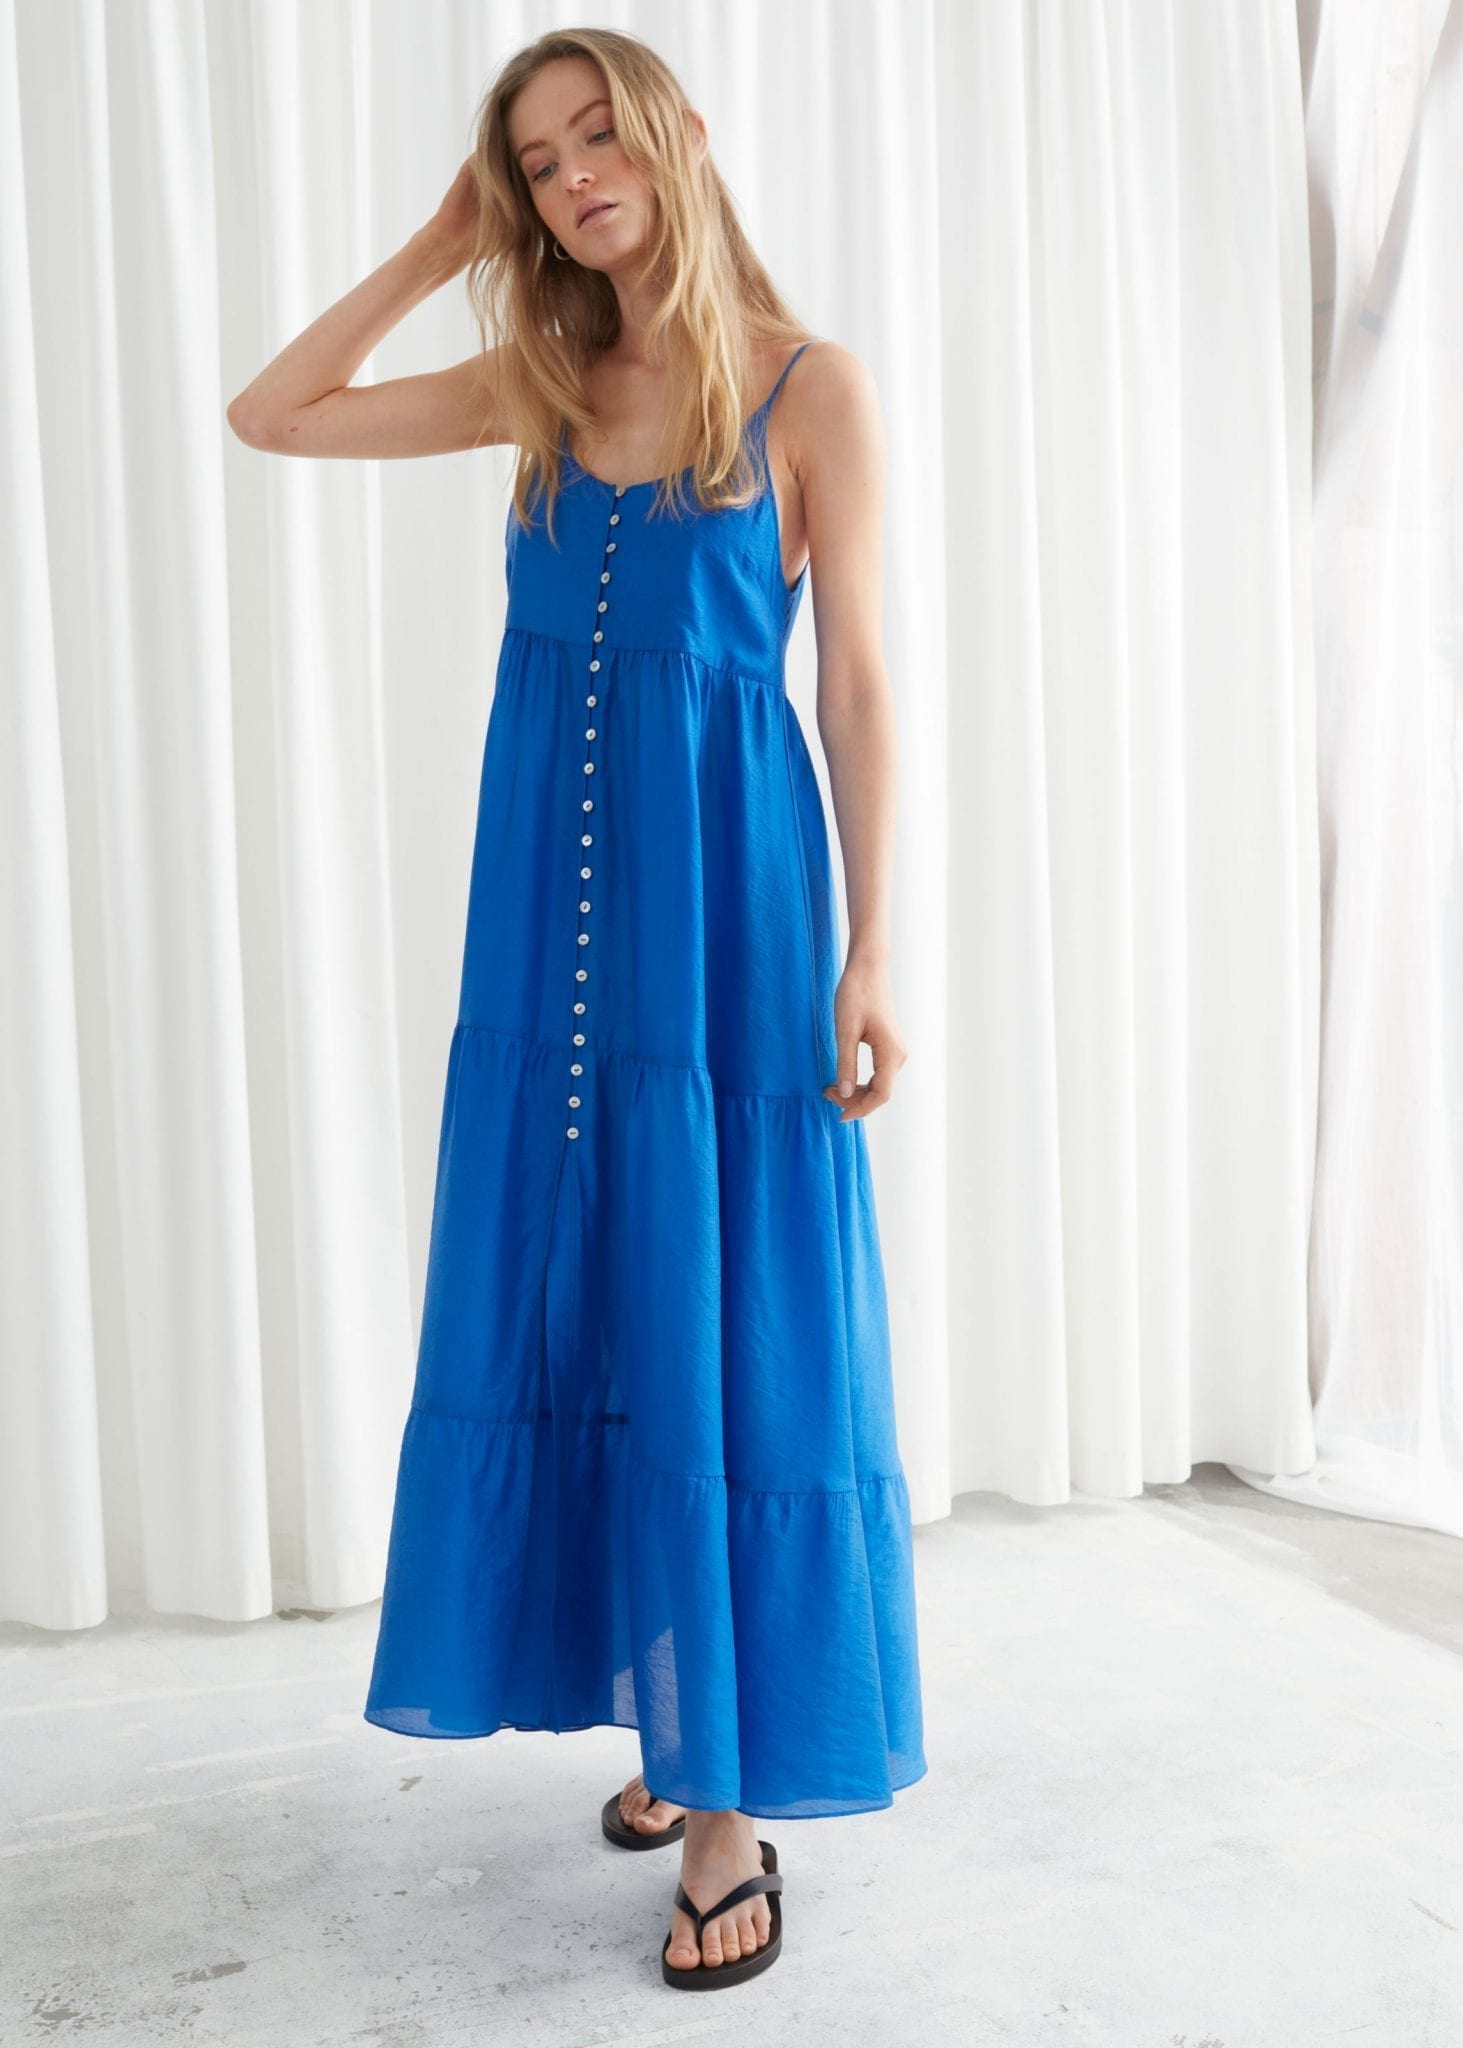 & OTHER STORIES Buttoned Maxi Strap Dress